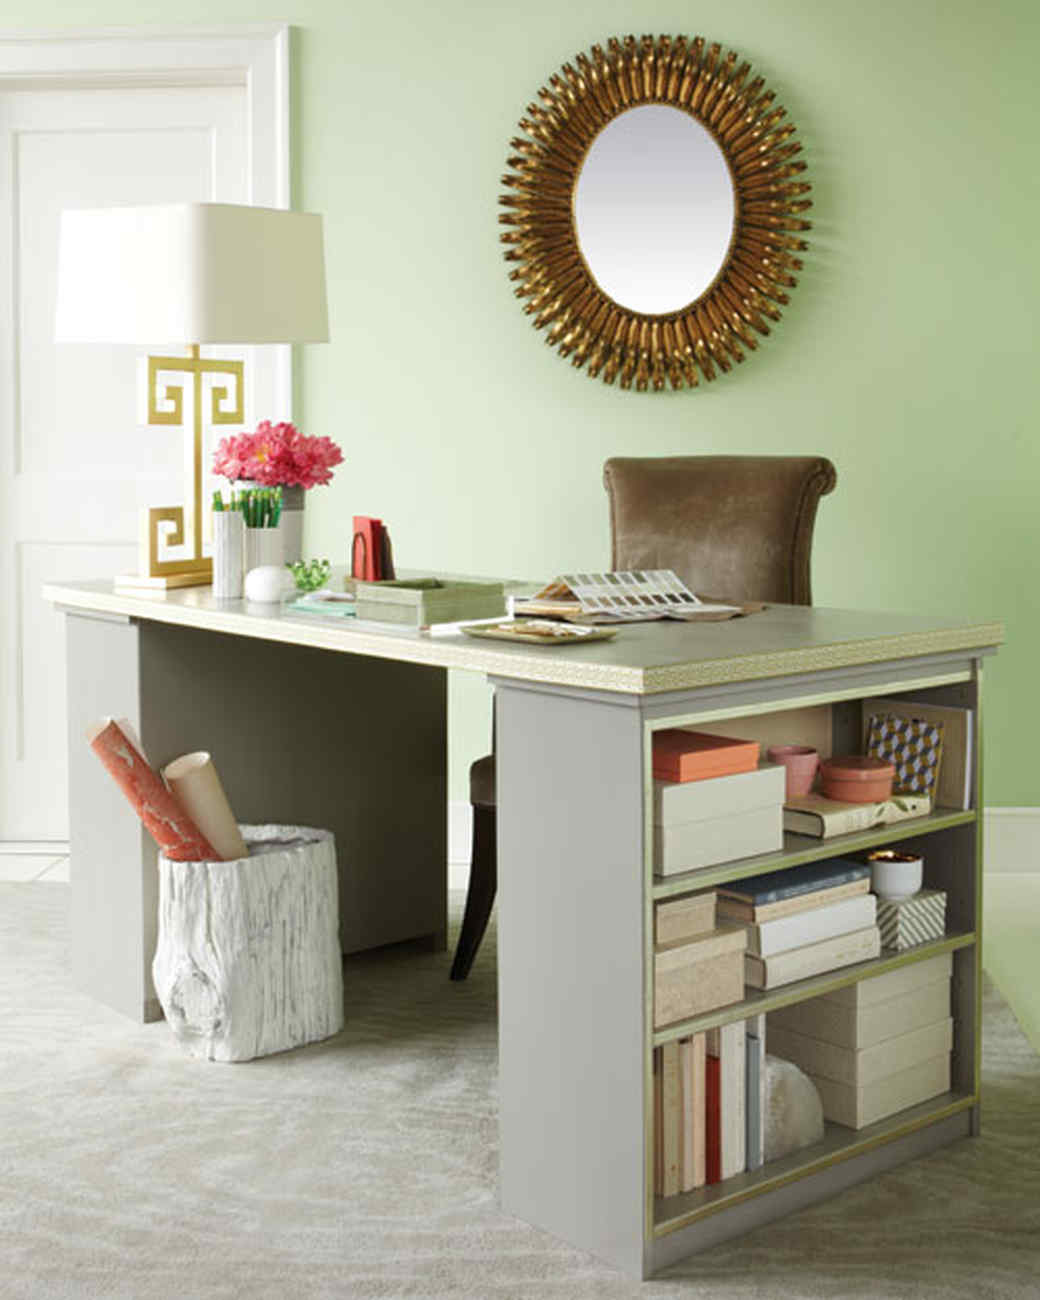 Desk organizing ideas martha stewart for Ideas para decorar un estudio